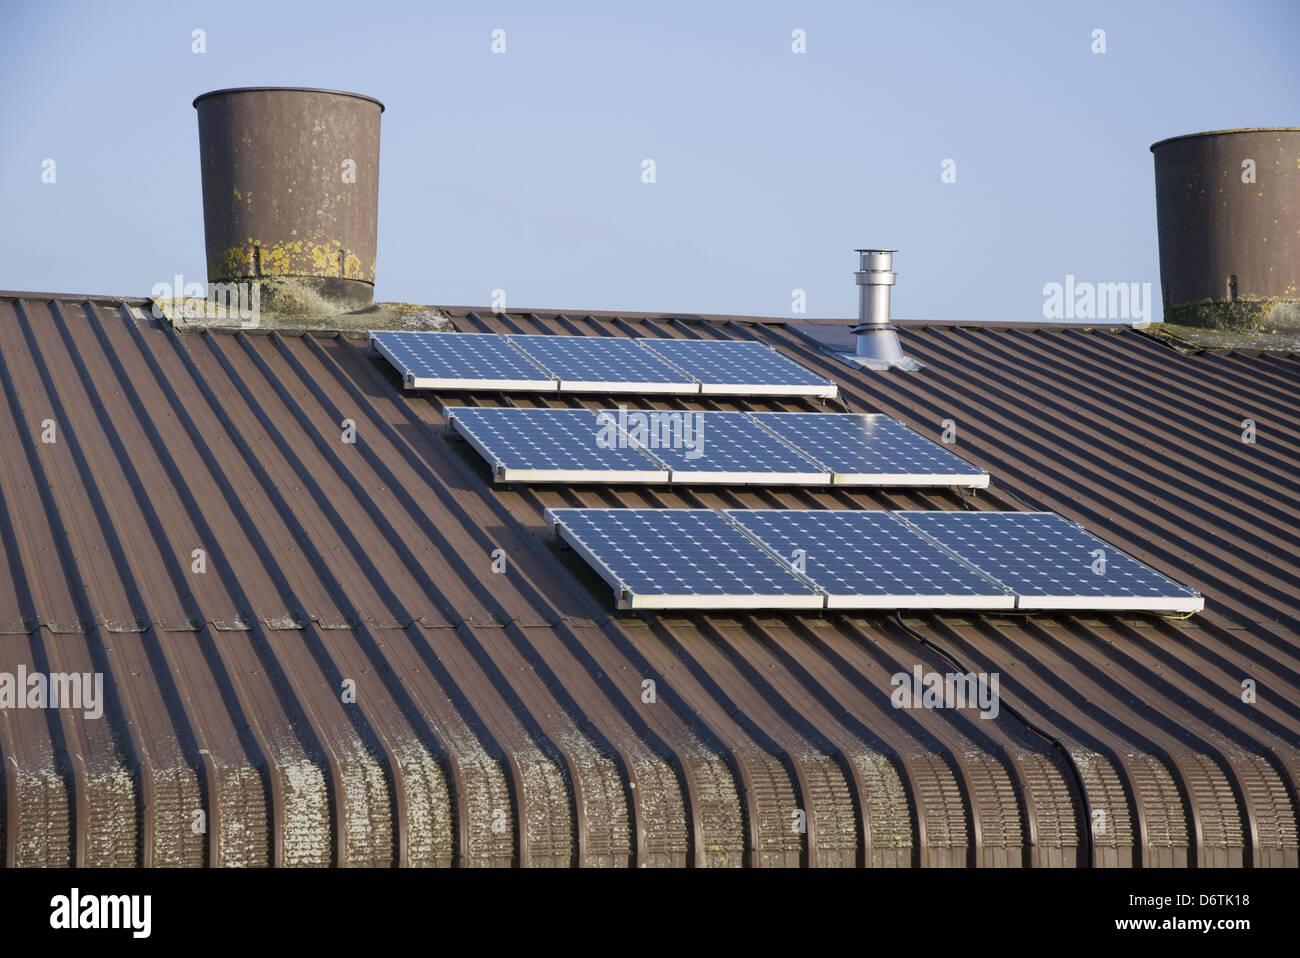 bird on solar panel stockfotos bird on solar panel bilder alamy. Black Bedroom Furniture Sets. Home Design Ideas